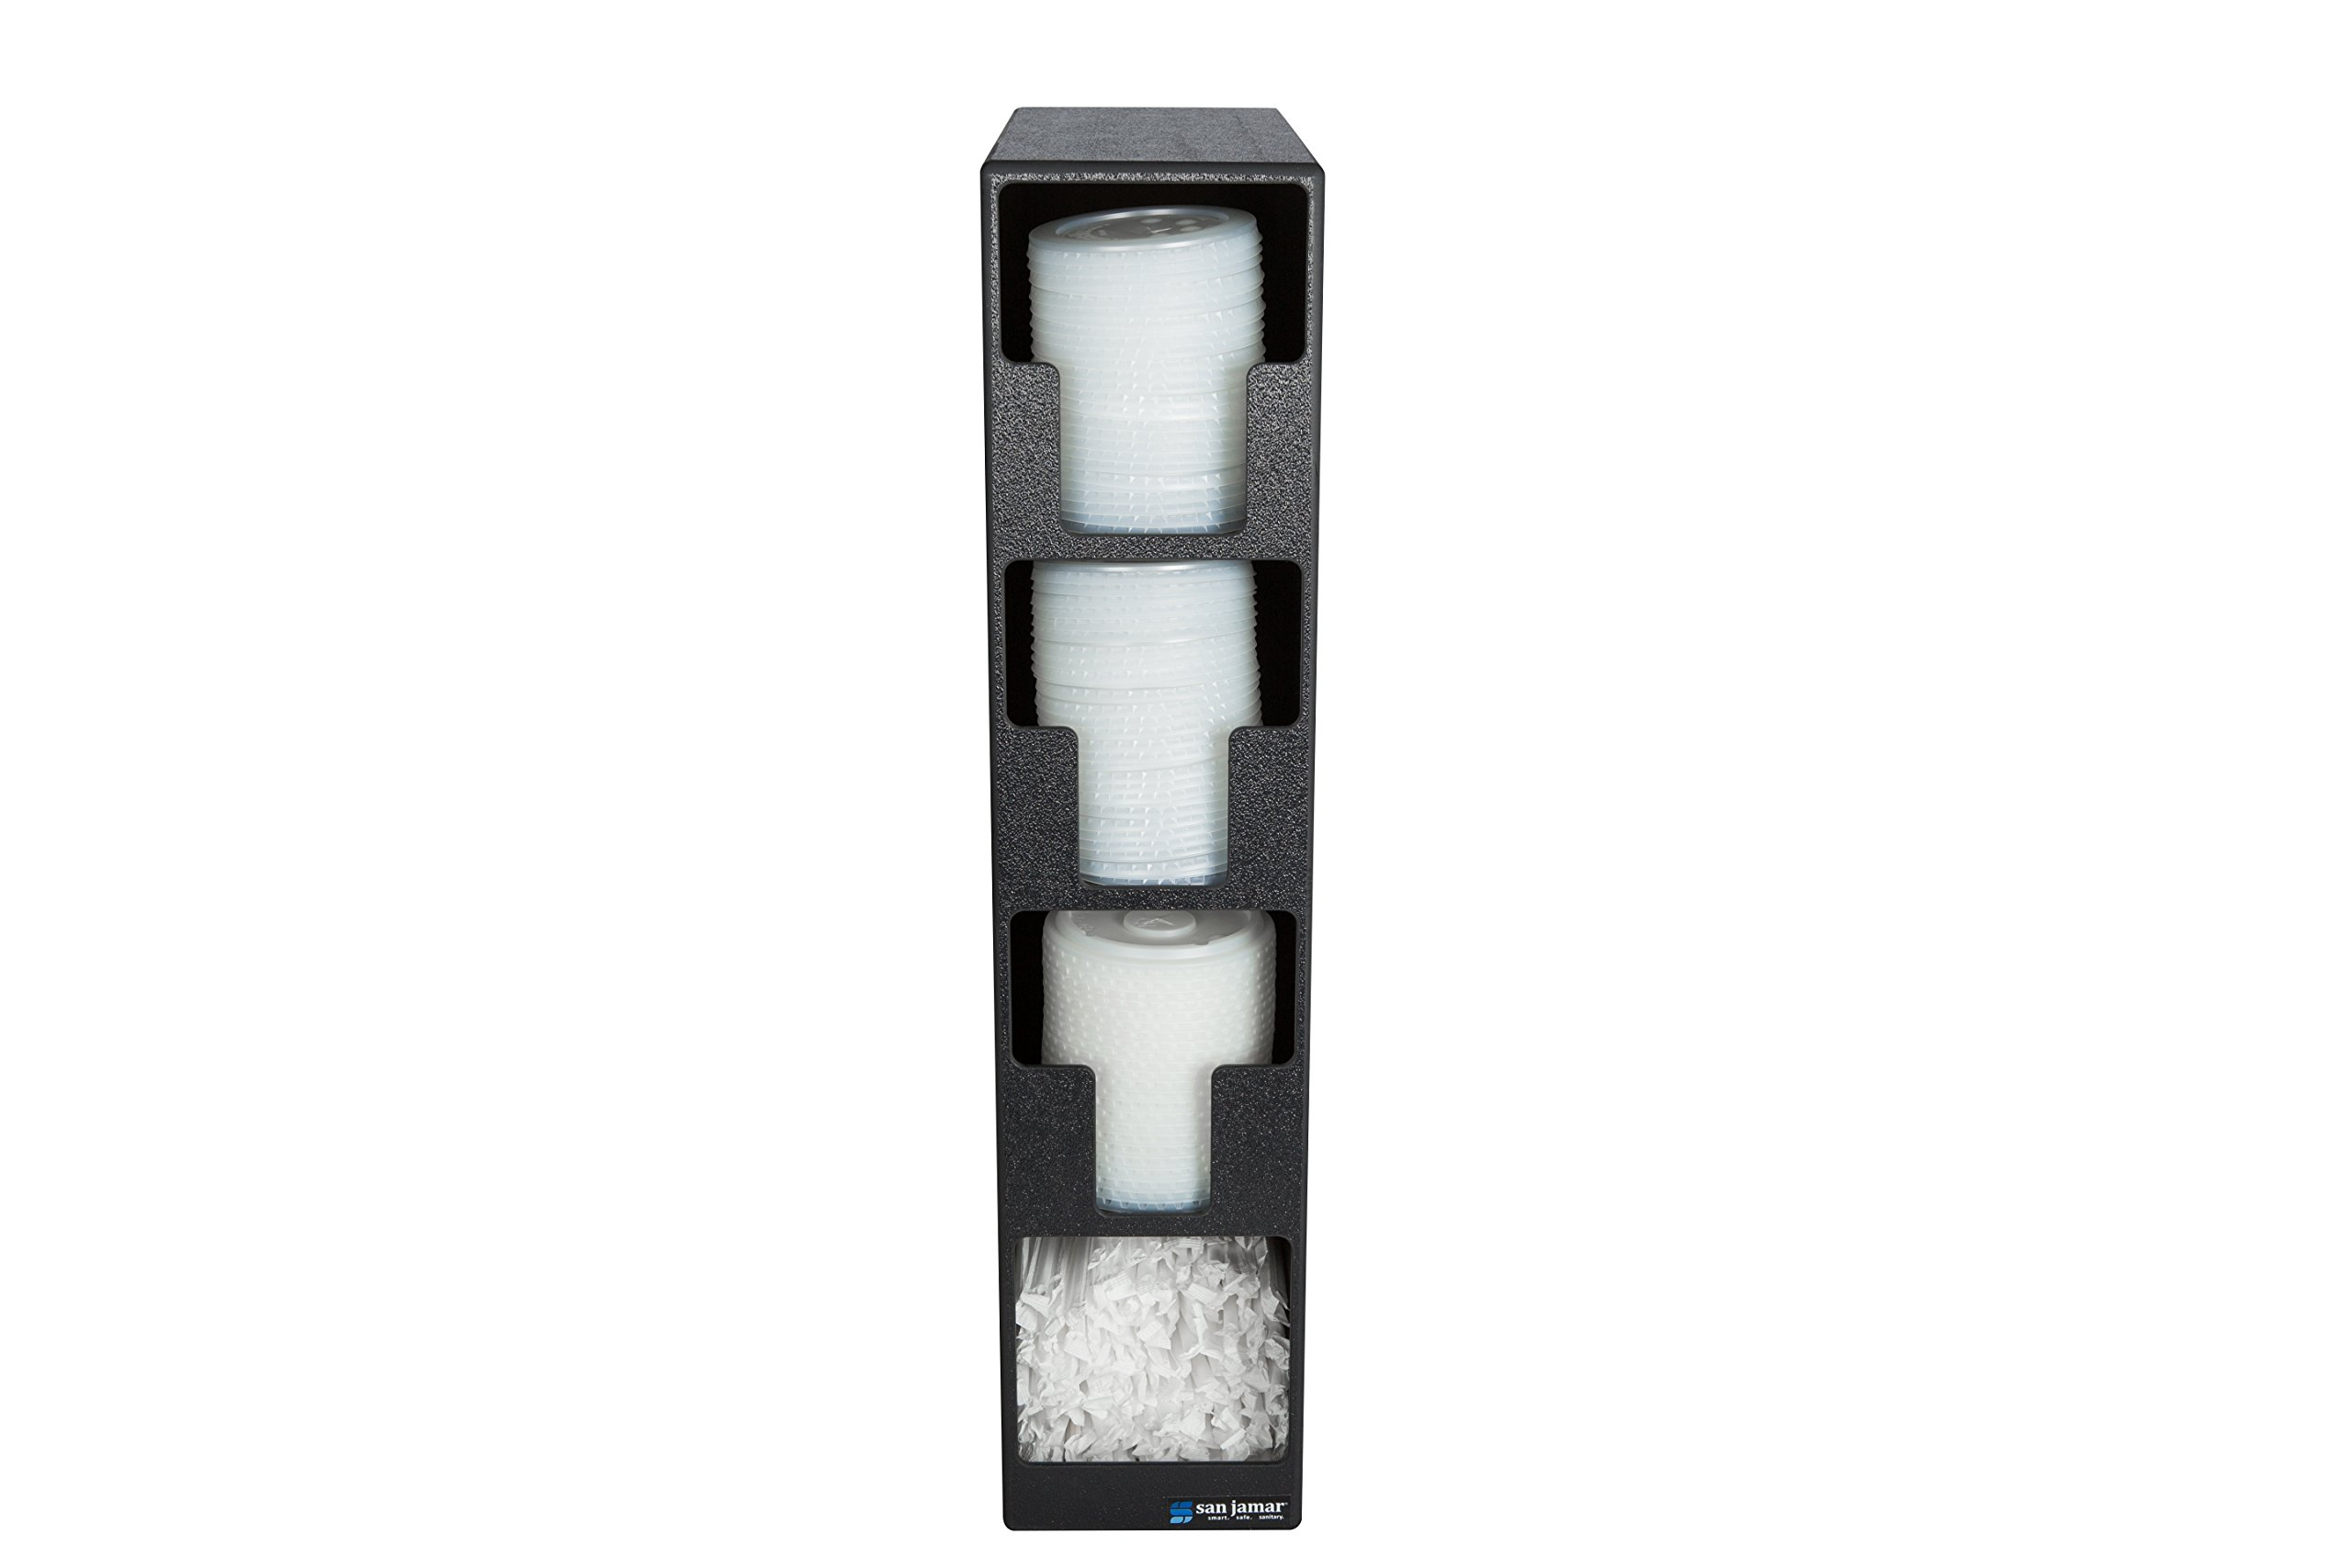 San Jamar L2203 Polystyrene Lid Dispenser with 3 Lid and 1 Straw Compartment, Black by San Jamar (Image #2)